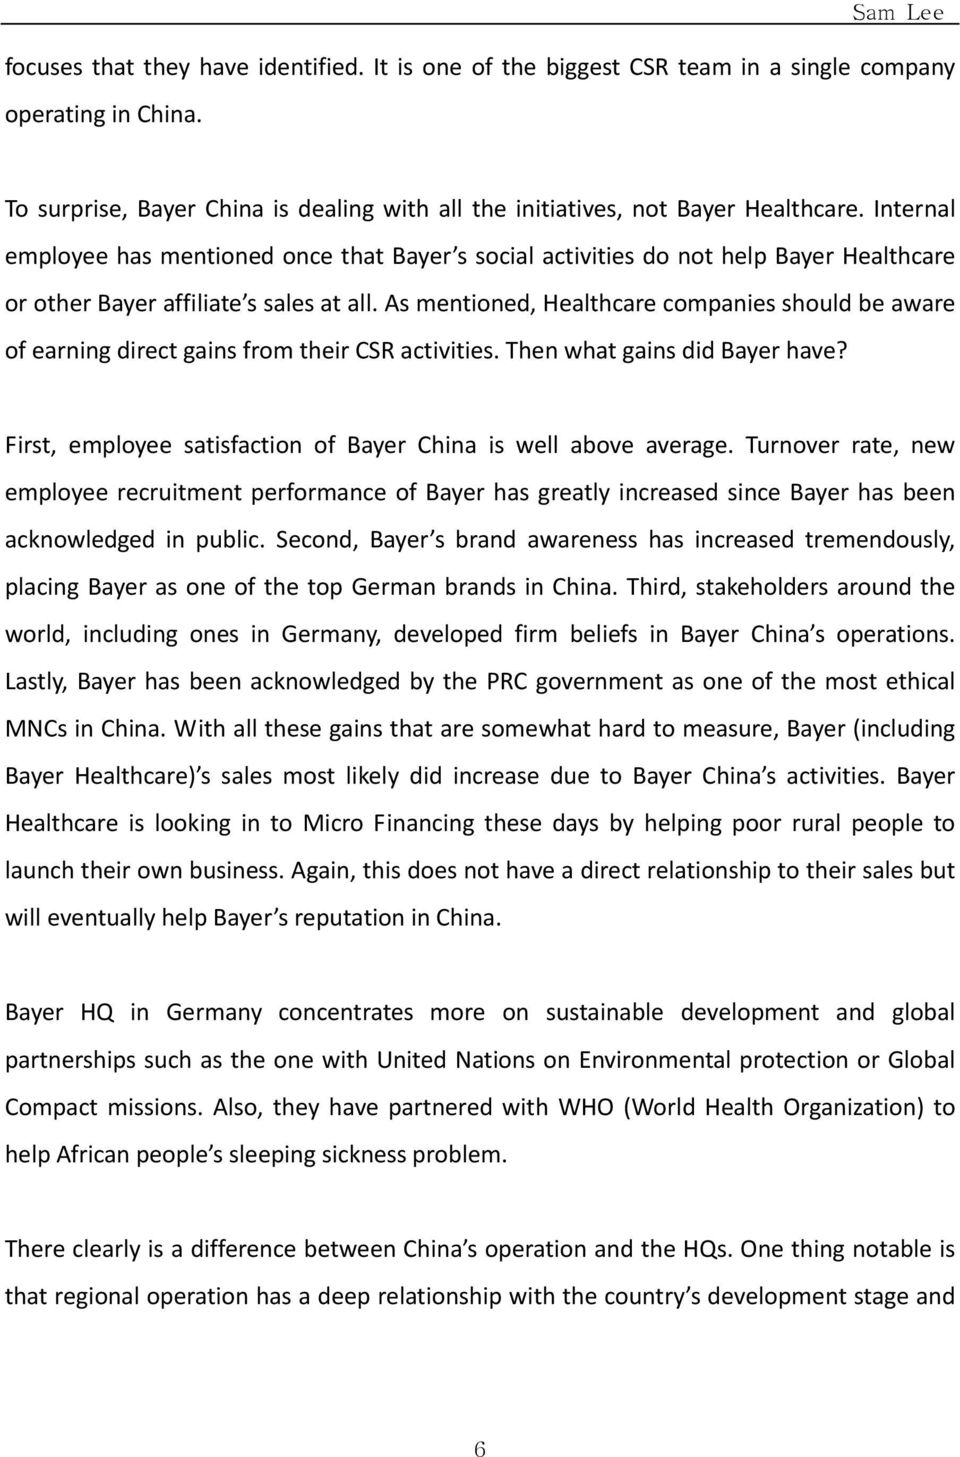 As mentioned, Healthcare companies should be aware of earning direct gains from their CSR activities. Then what gains did Bayer have? First, employee satisfaction of Bayer China is well above average.